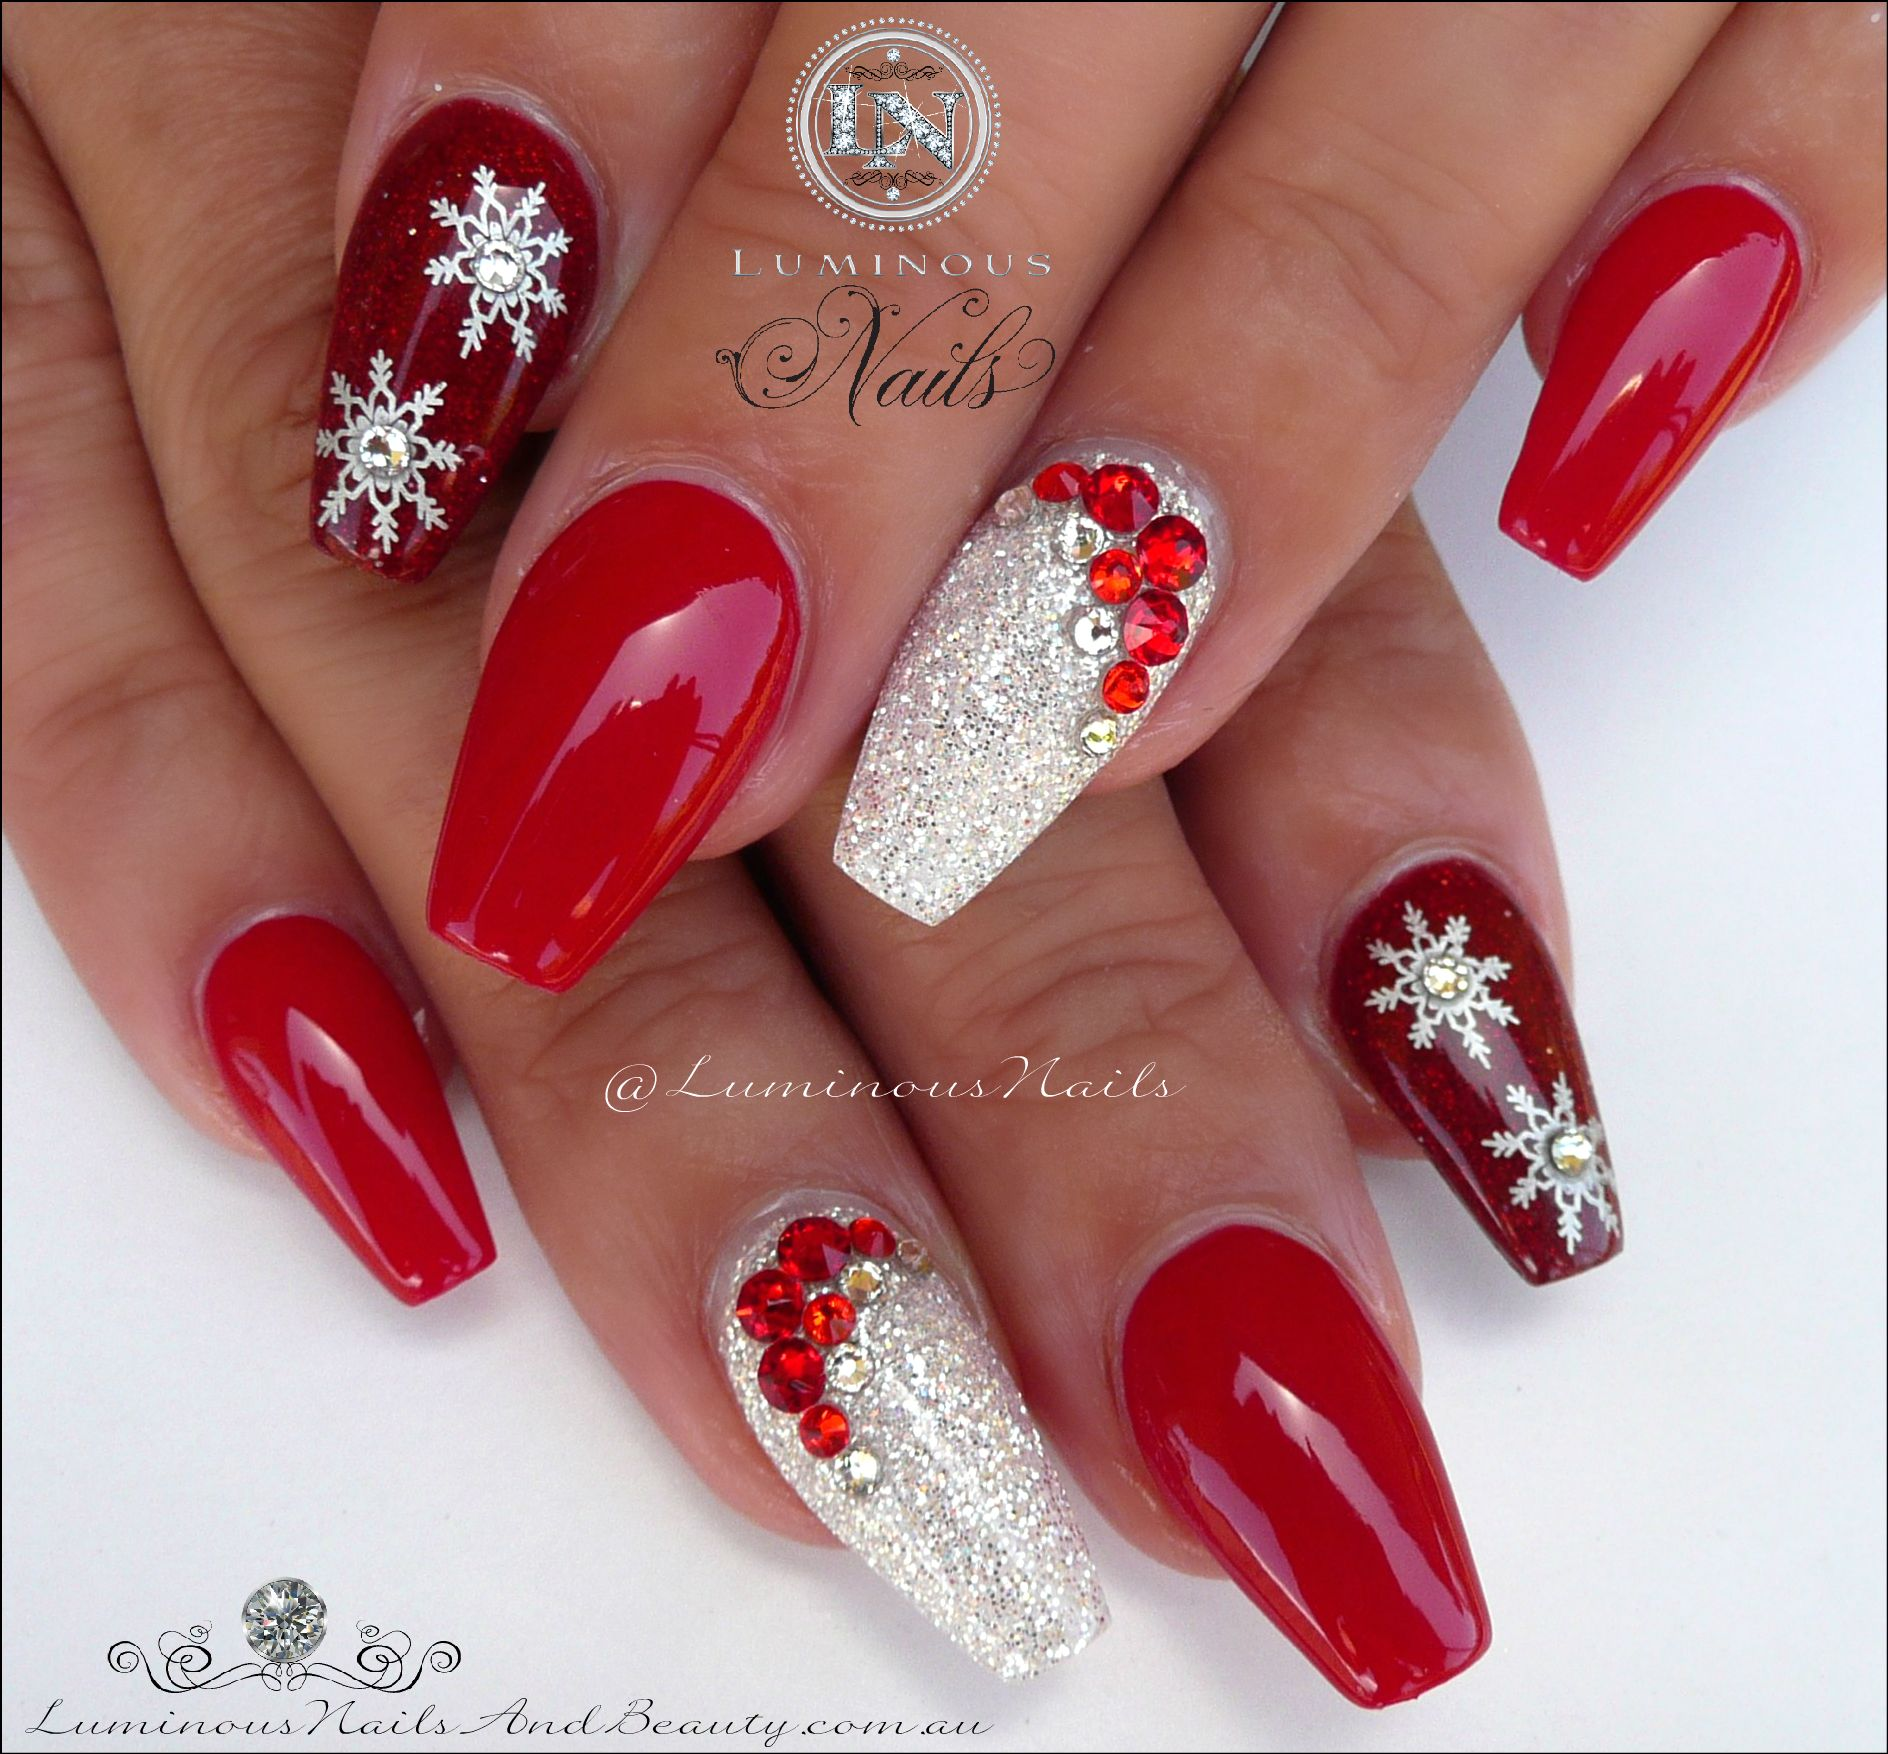 Red White Christmas Nails Acrylic Gel Nails Christmas Nails Acrylic Red Christmas Nails Xmas Nails